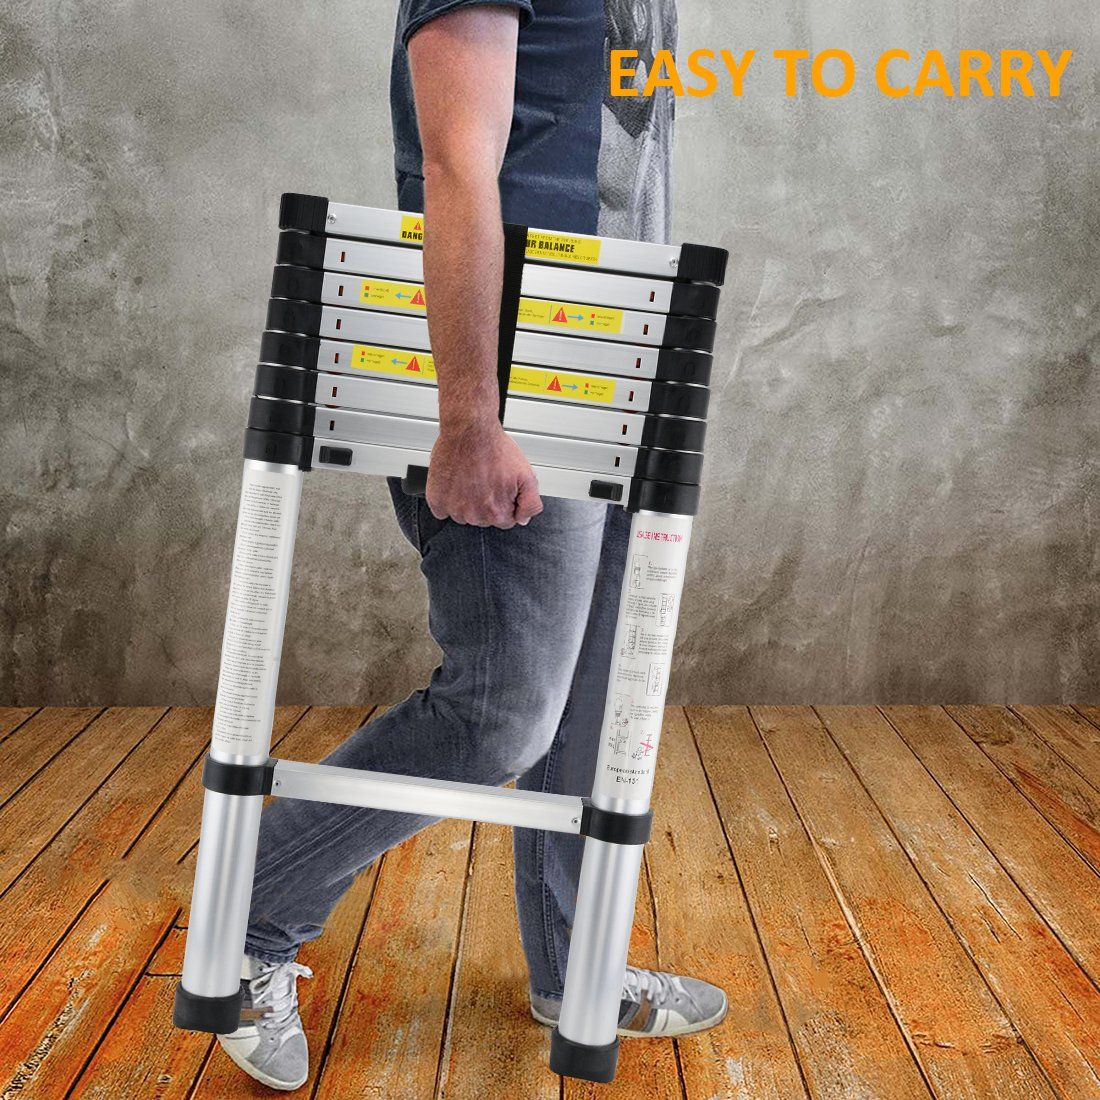 8 5ft Telescopic Extension Ladder With Spring Loaded Locking Mechanism Nonslip 330 Lb Max Click The Picture For Additional Details Ladder Household Locks